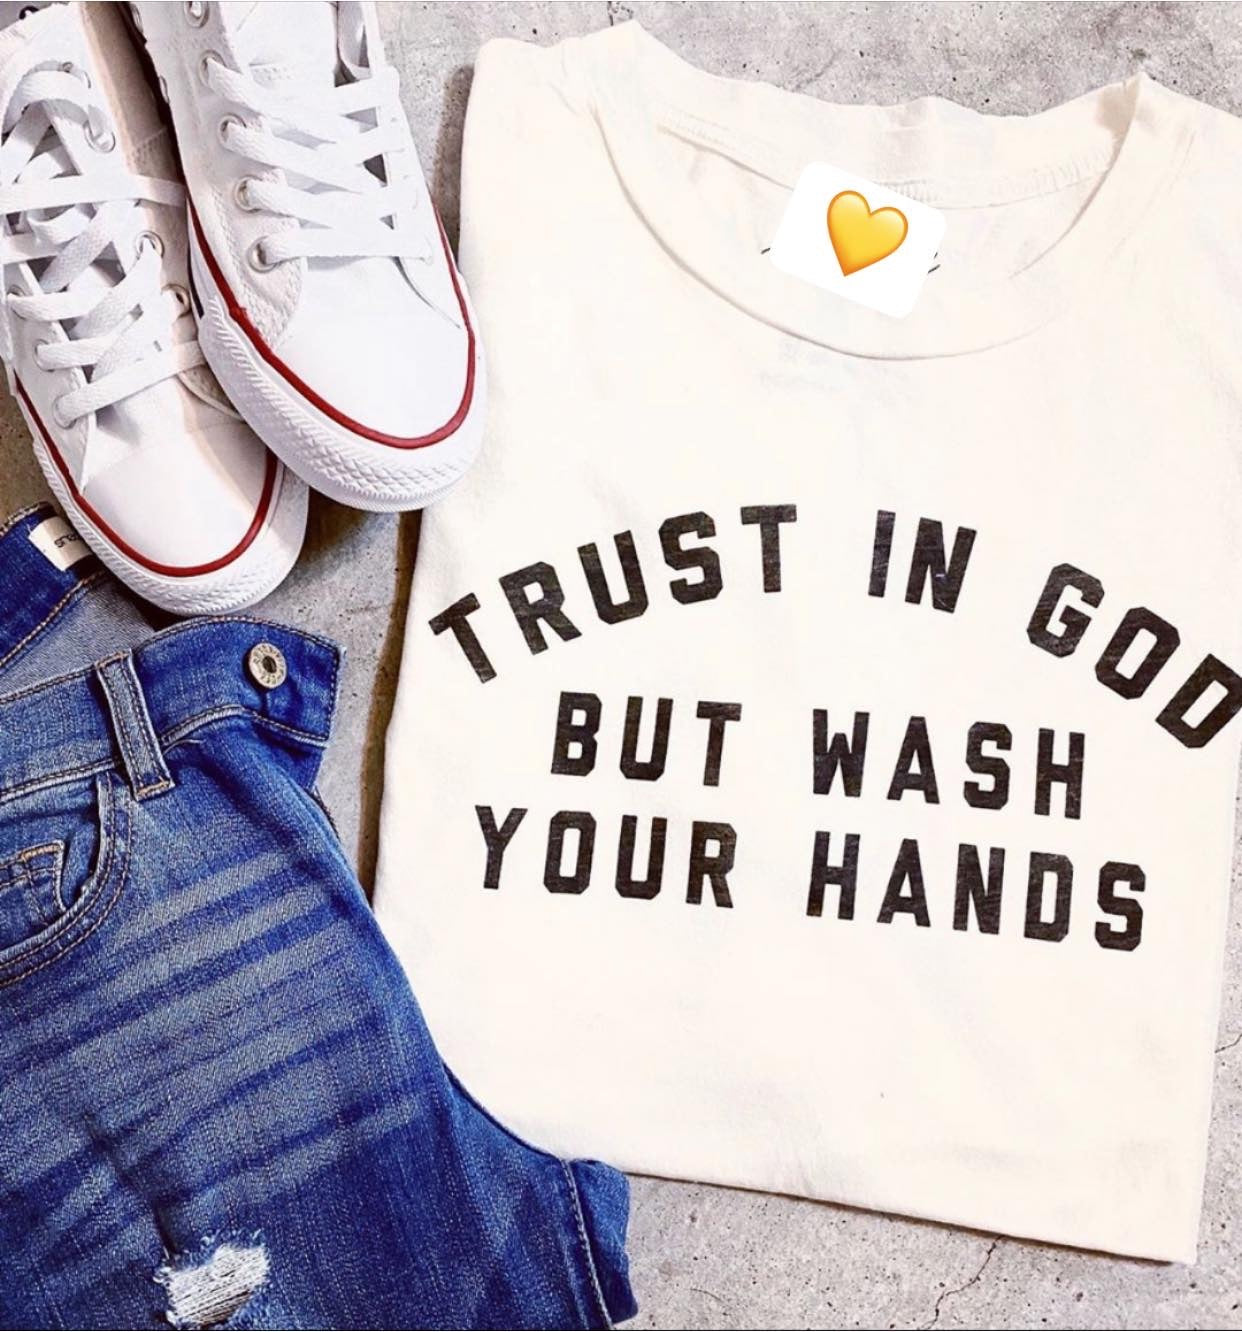 Trust In God, But Wash Your Hands